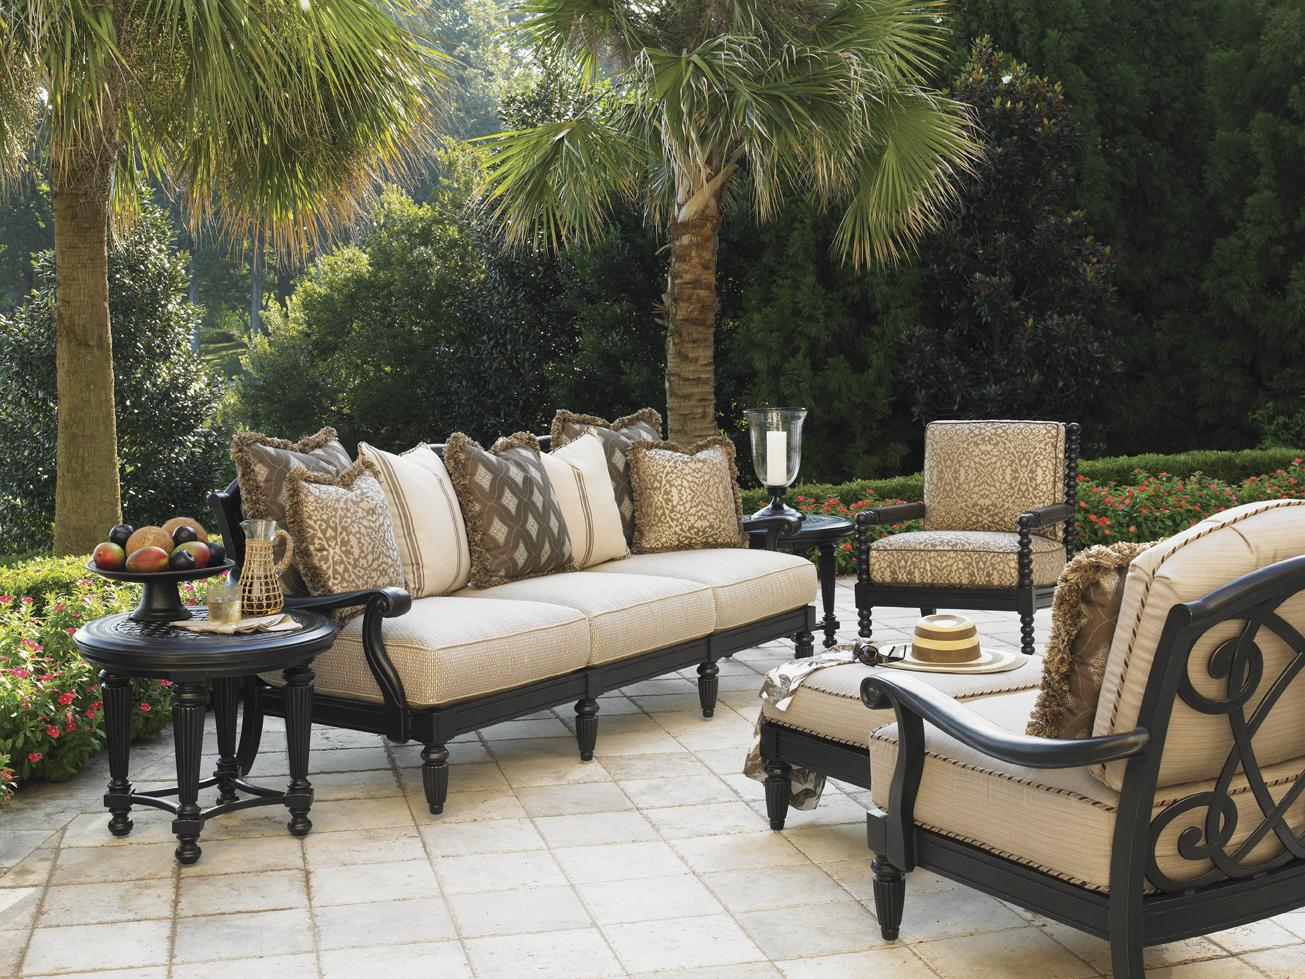 Kingstown sedona 3190 by tommy bahama outdoor living for Outdoor garden furniture